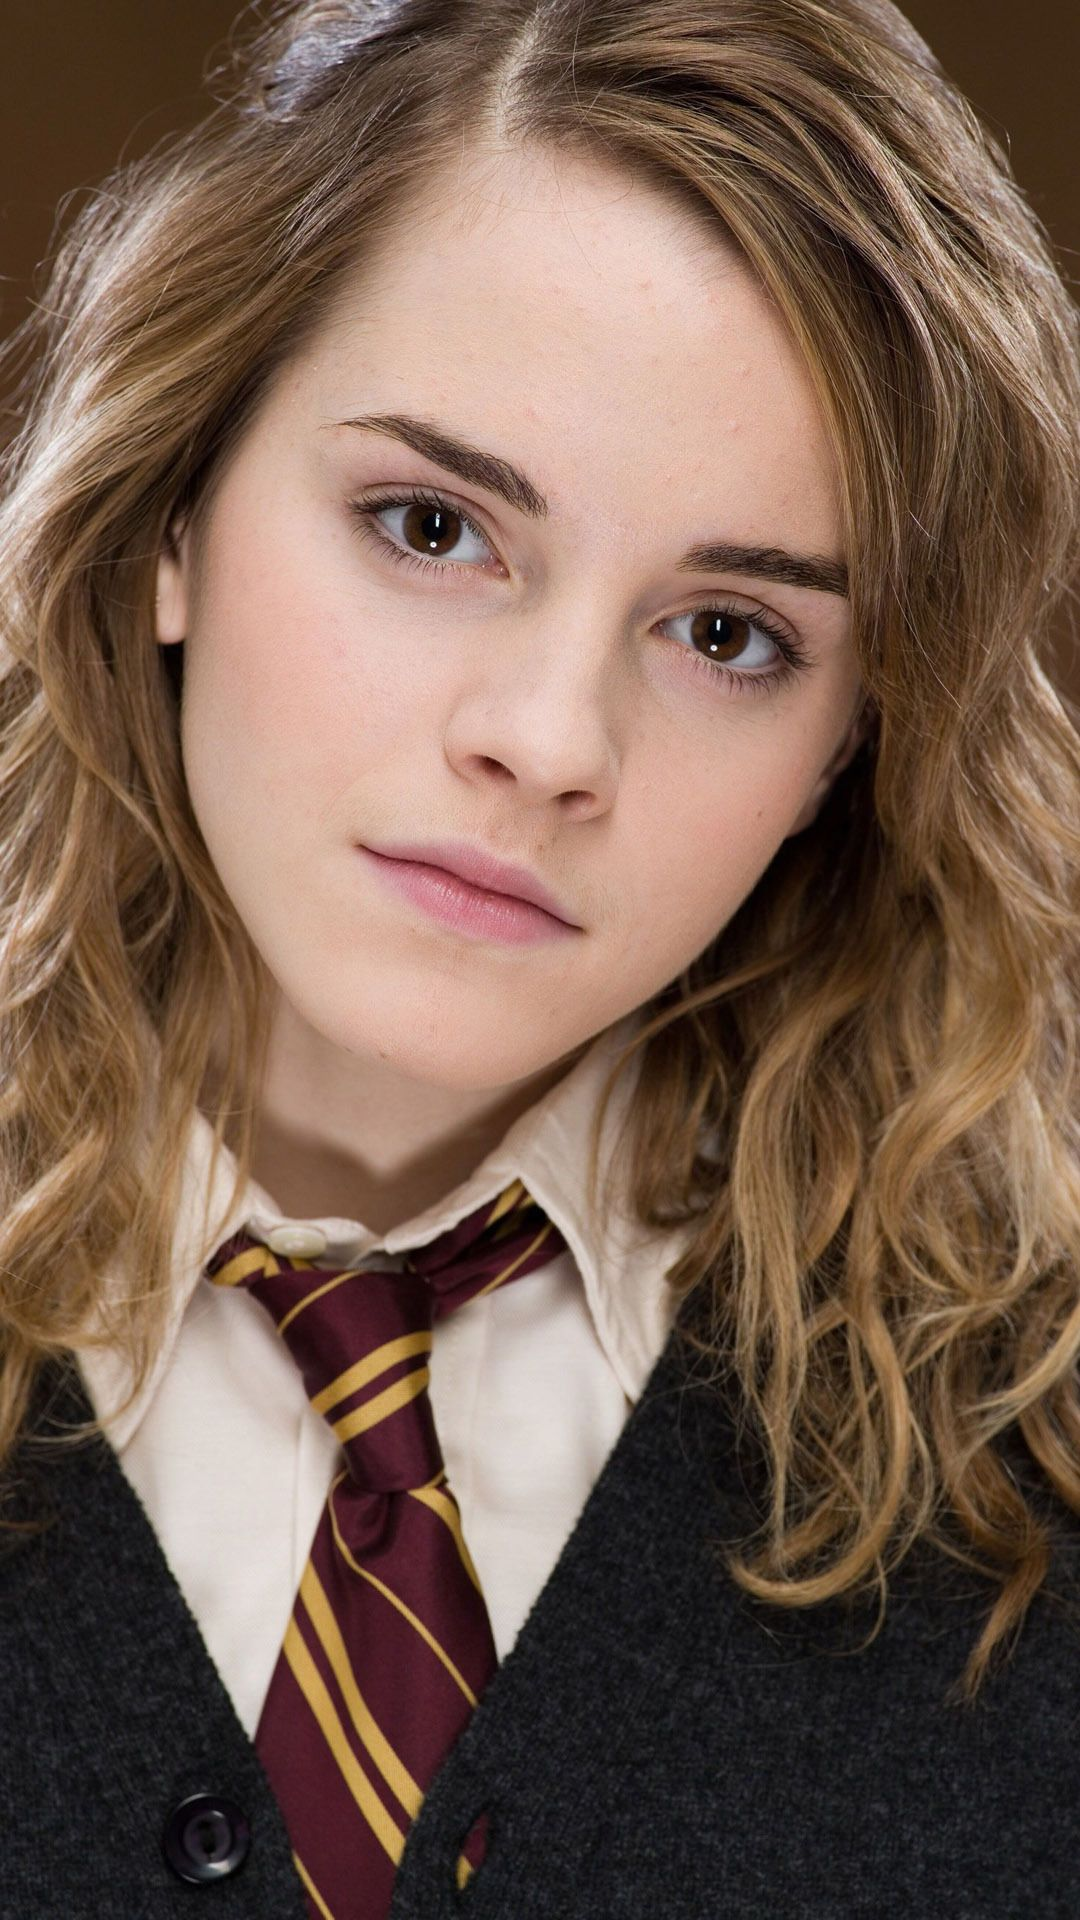 hermione granger harry potter wallpaper hermione